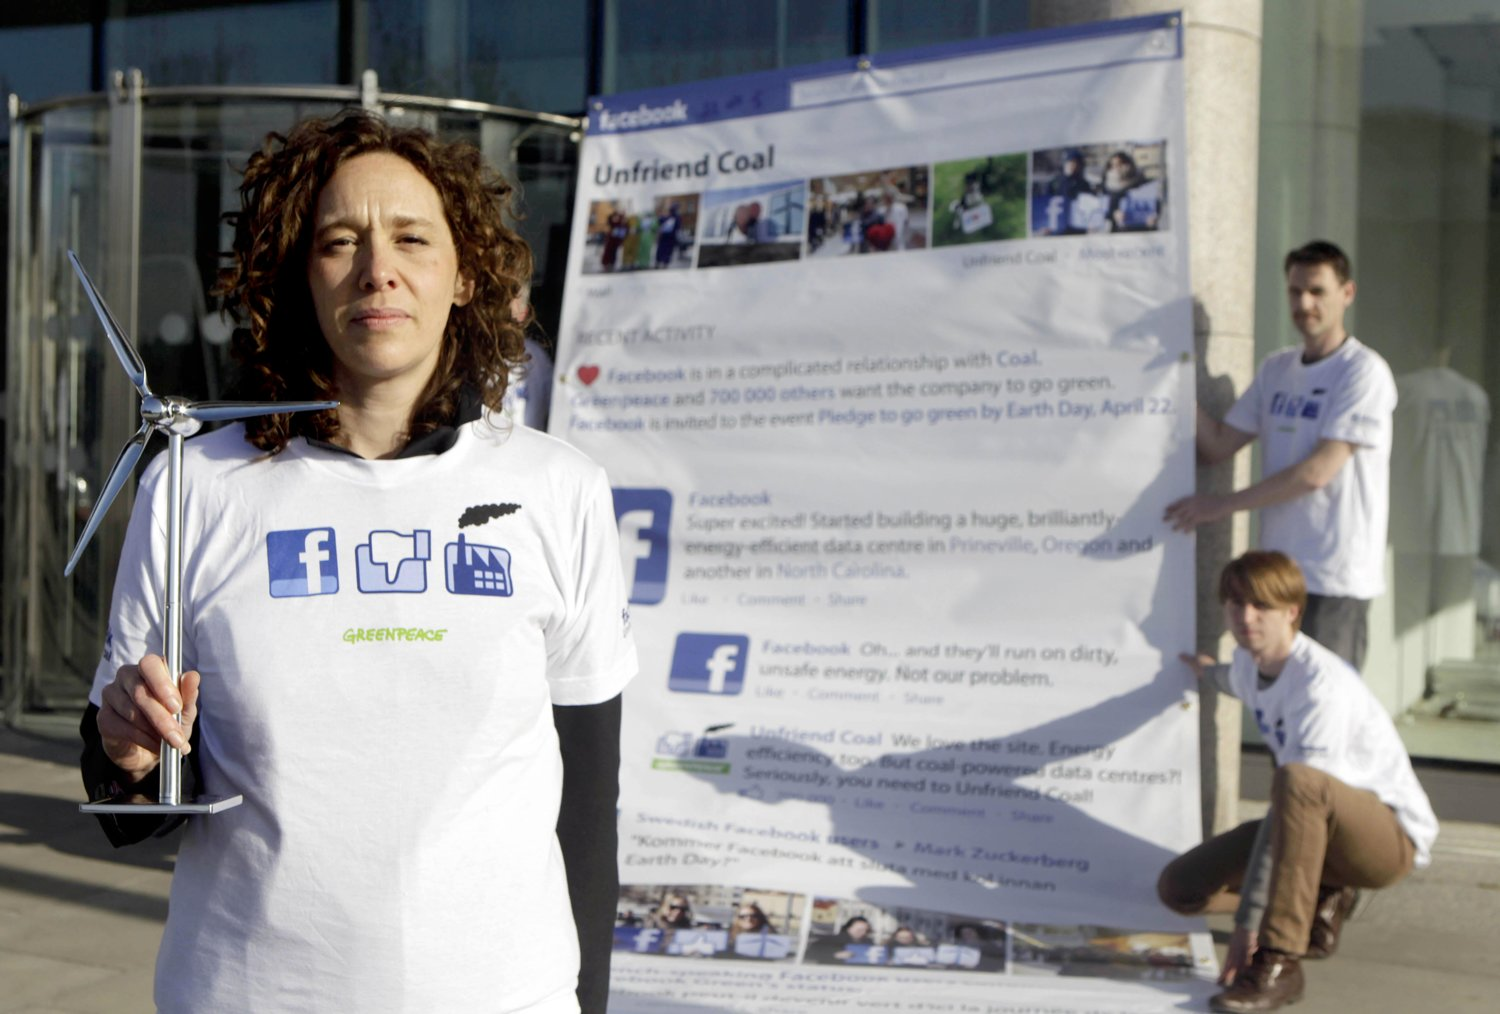 Climate activist Tzeporah Berman leads Irish Greenpeace volunteers in a protest outside Facebook's Dublin office calling on them to change the type of energy they use.